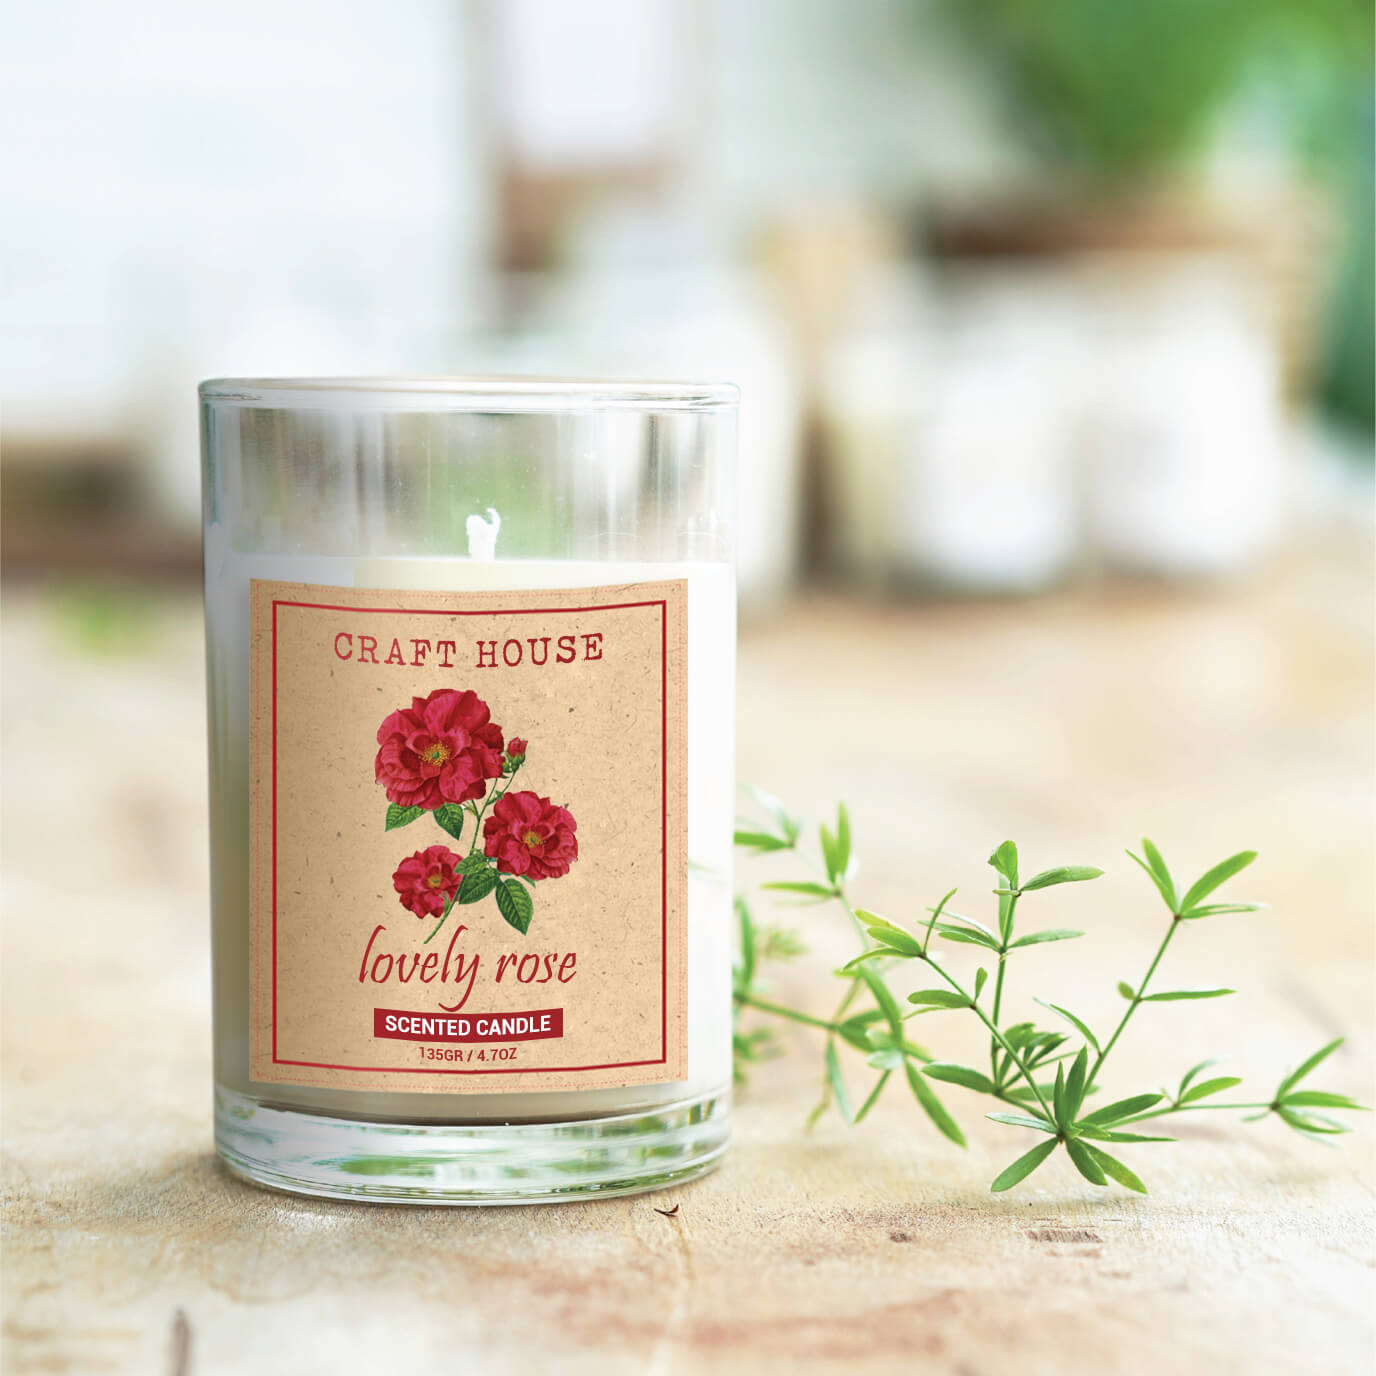 nen-thom-thien-nhien-craft-house-natural-scented-candle-lovely-rose